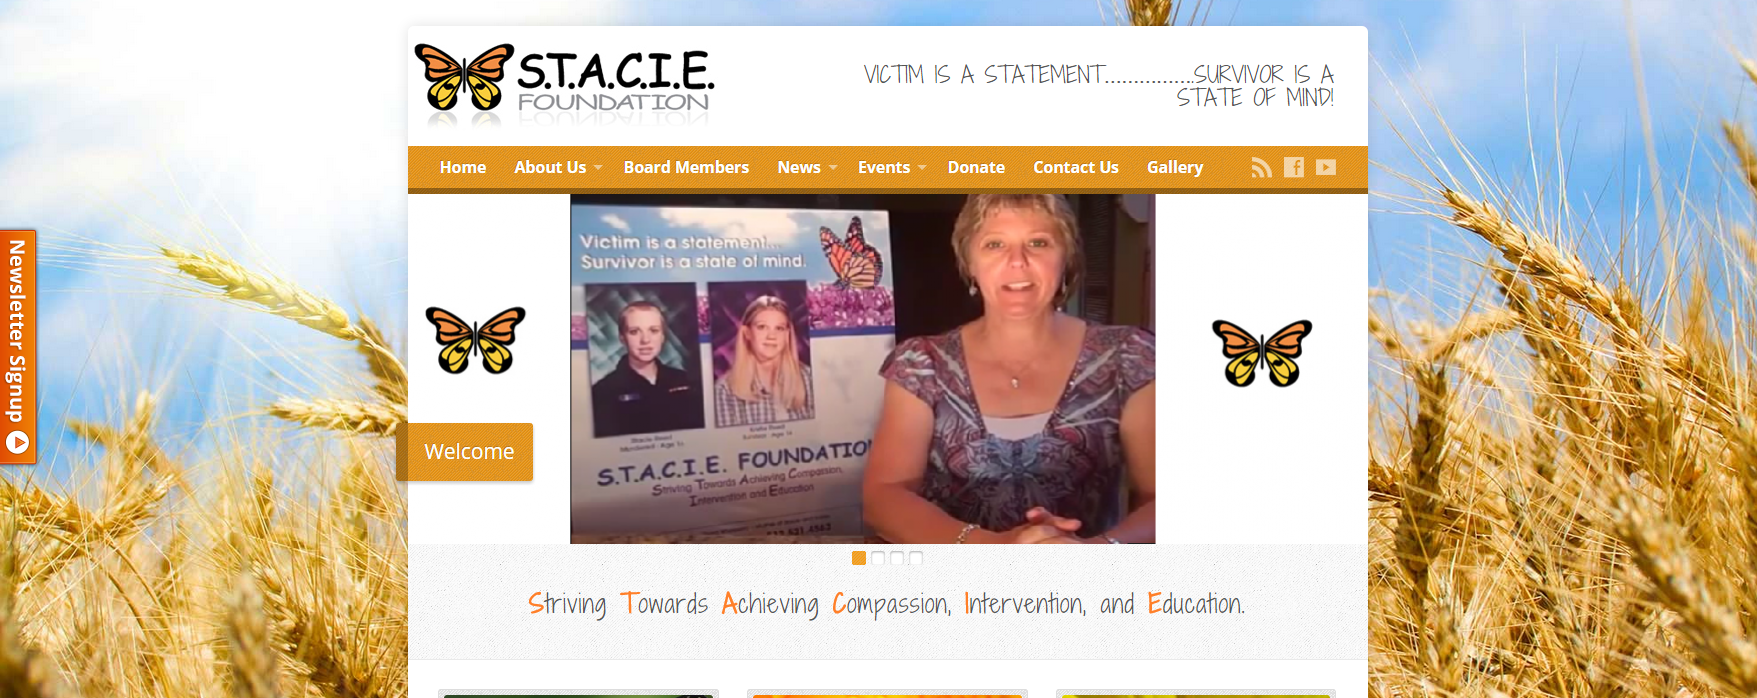 S.T.A.C.I.E. Foundation